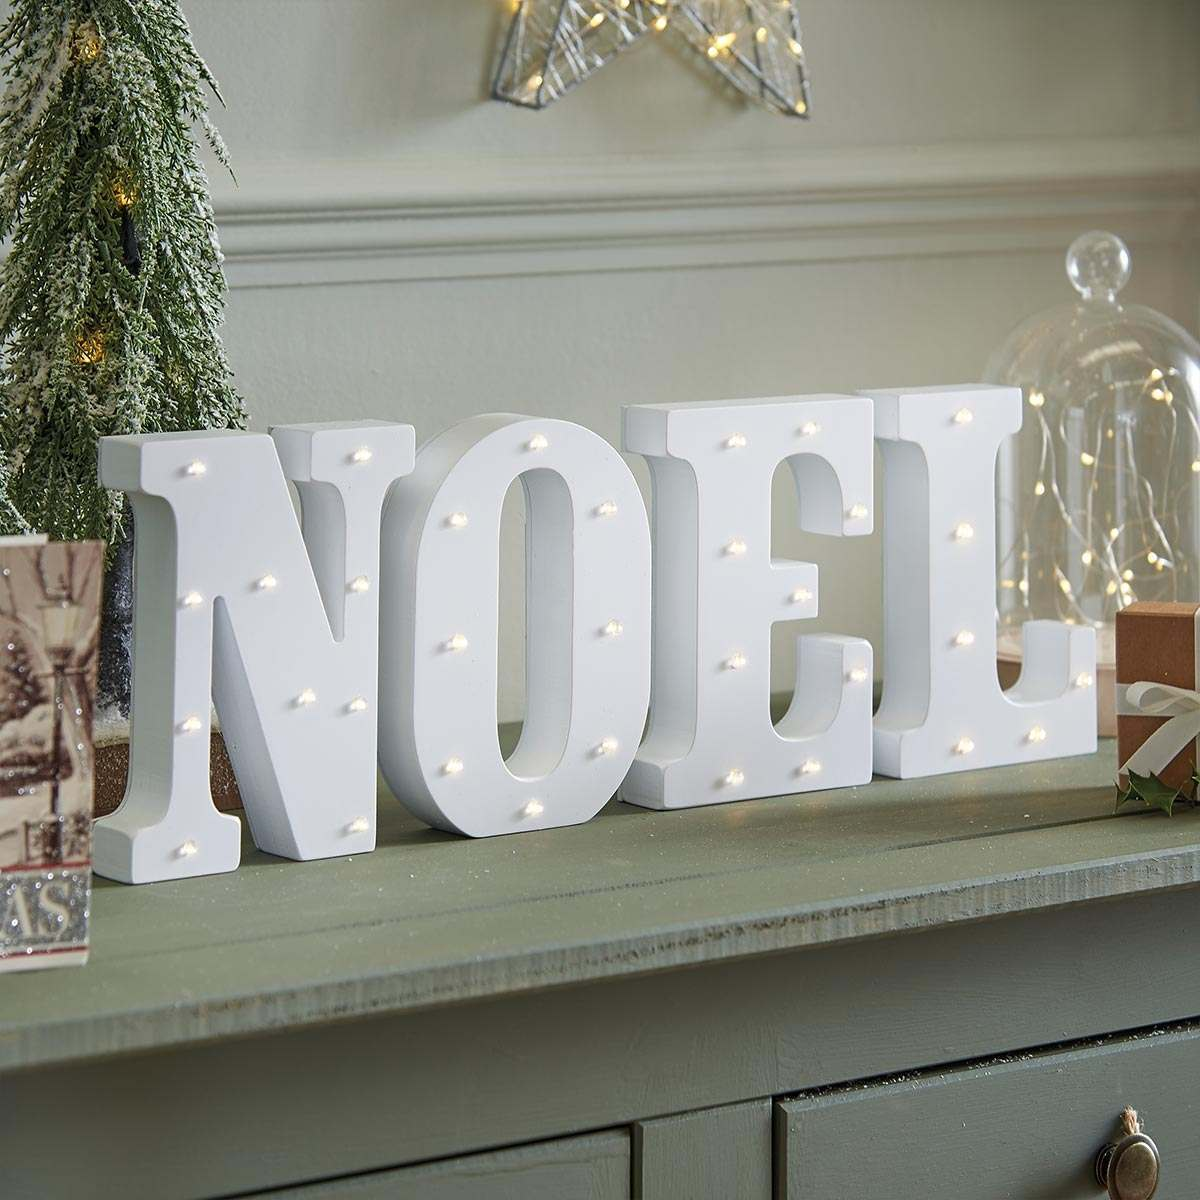 Noel Battery Light Up Circus Letters Warm White Leds